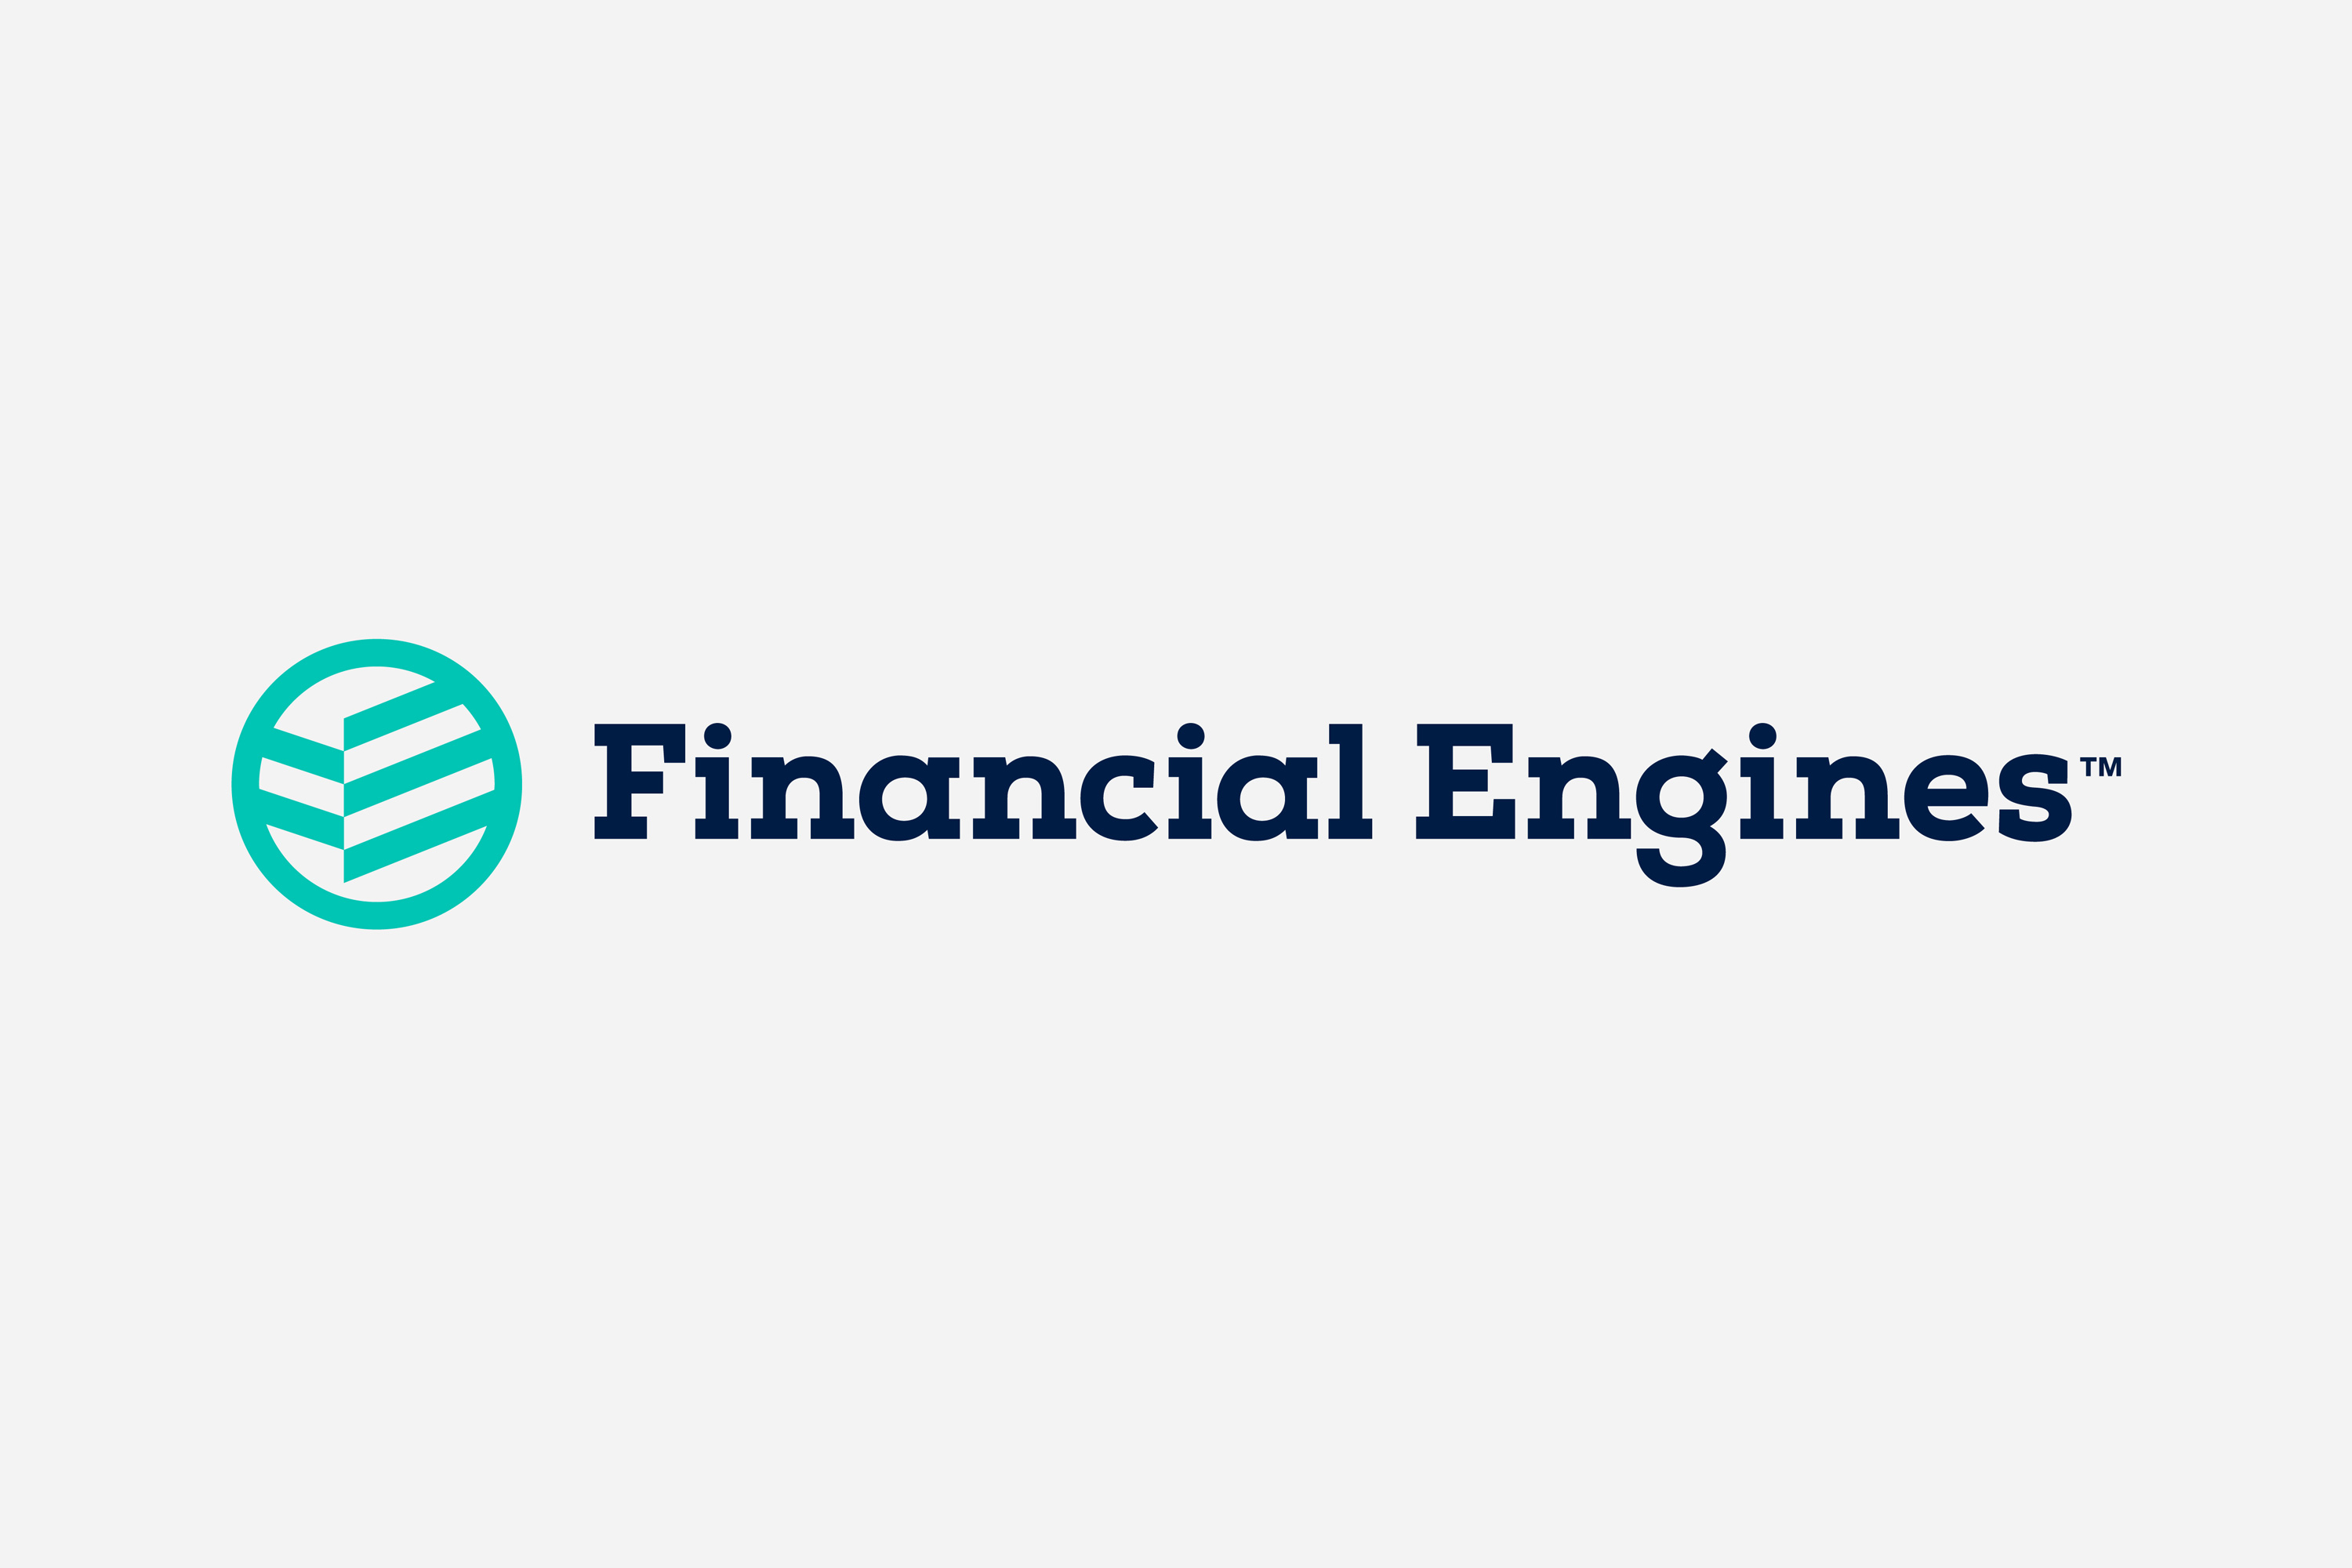 Financial_Engines_01